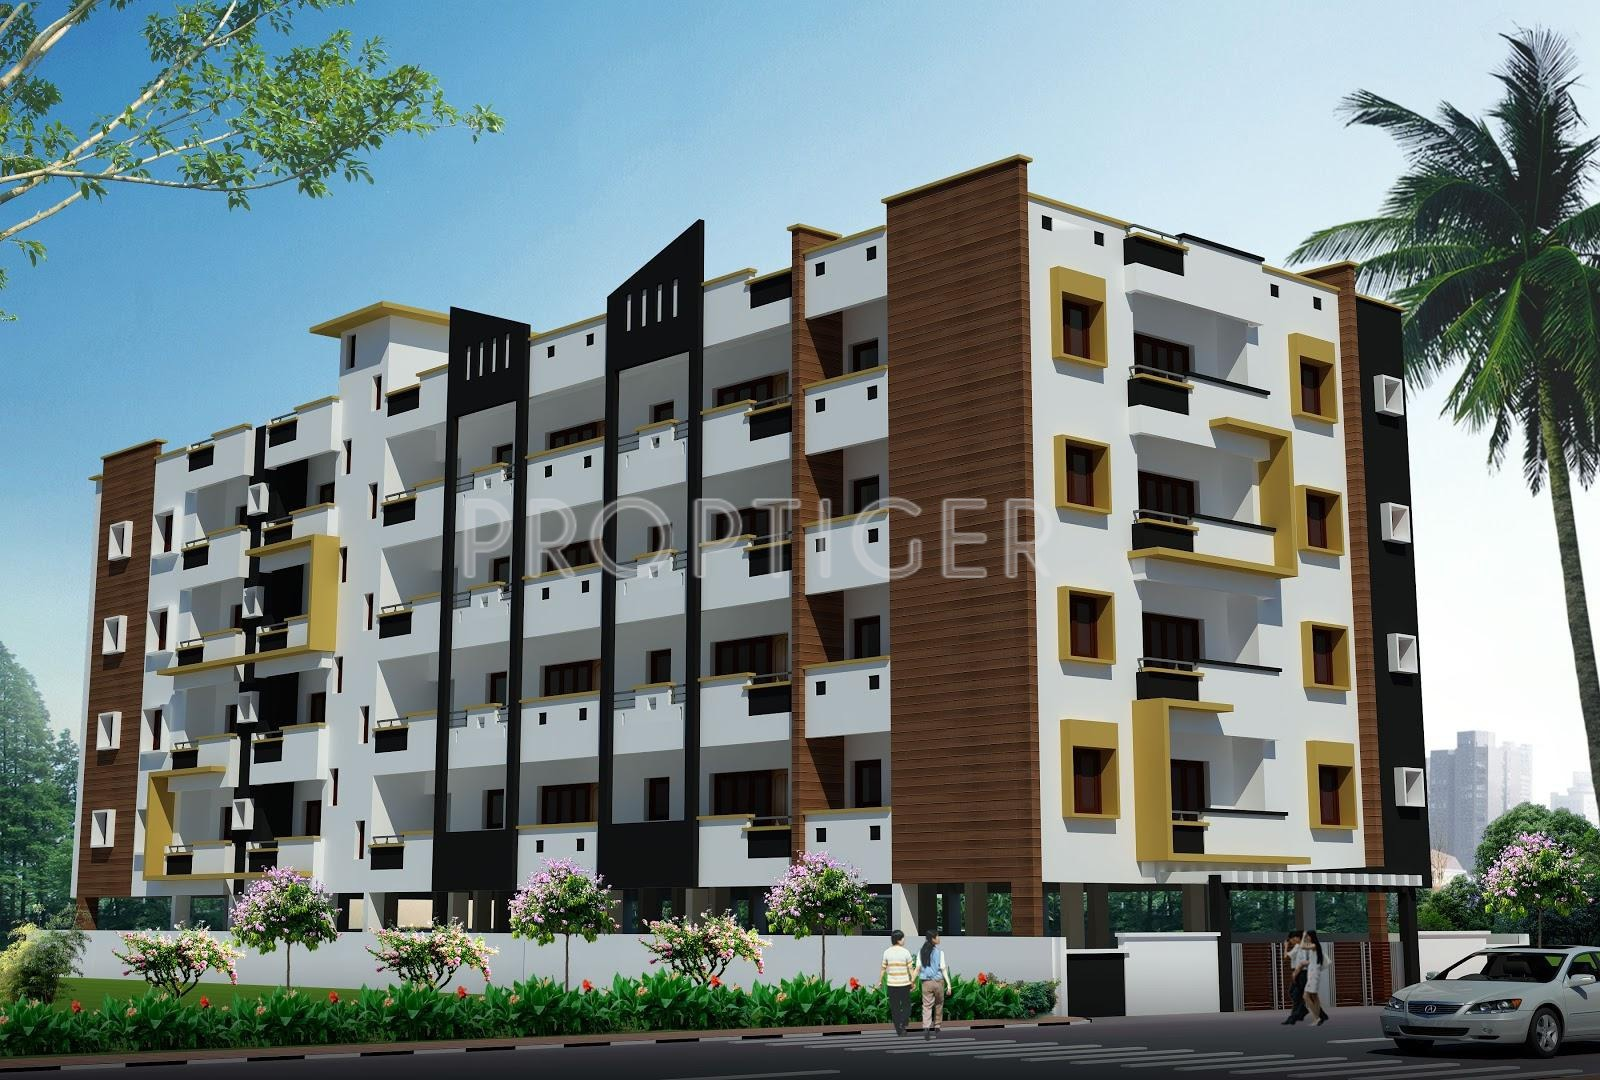 Mithra Raji Residency by Mithra Constructions in Varthur